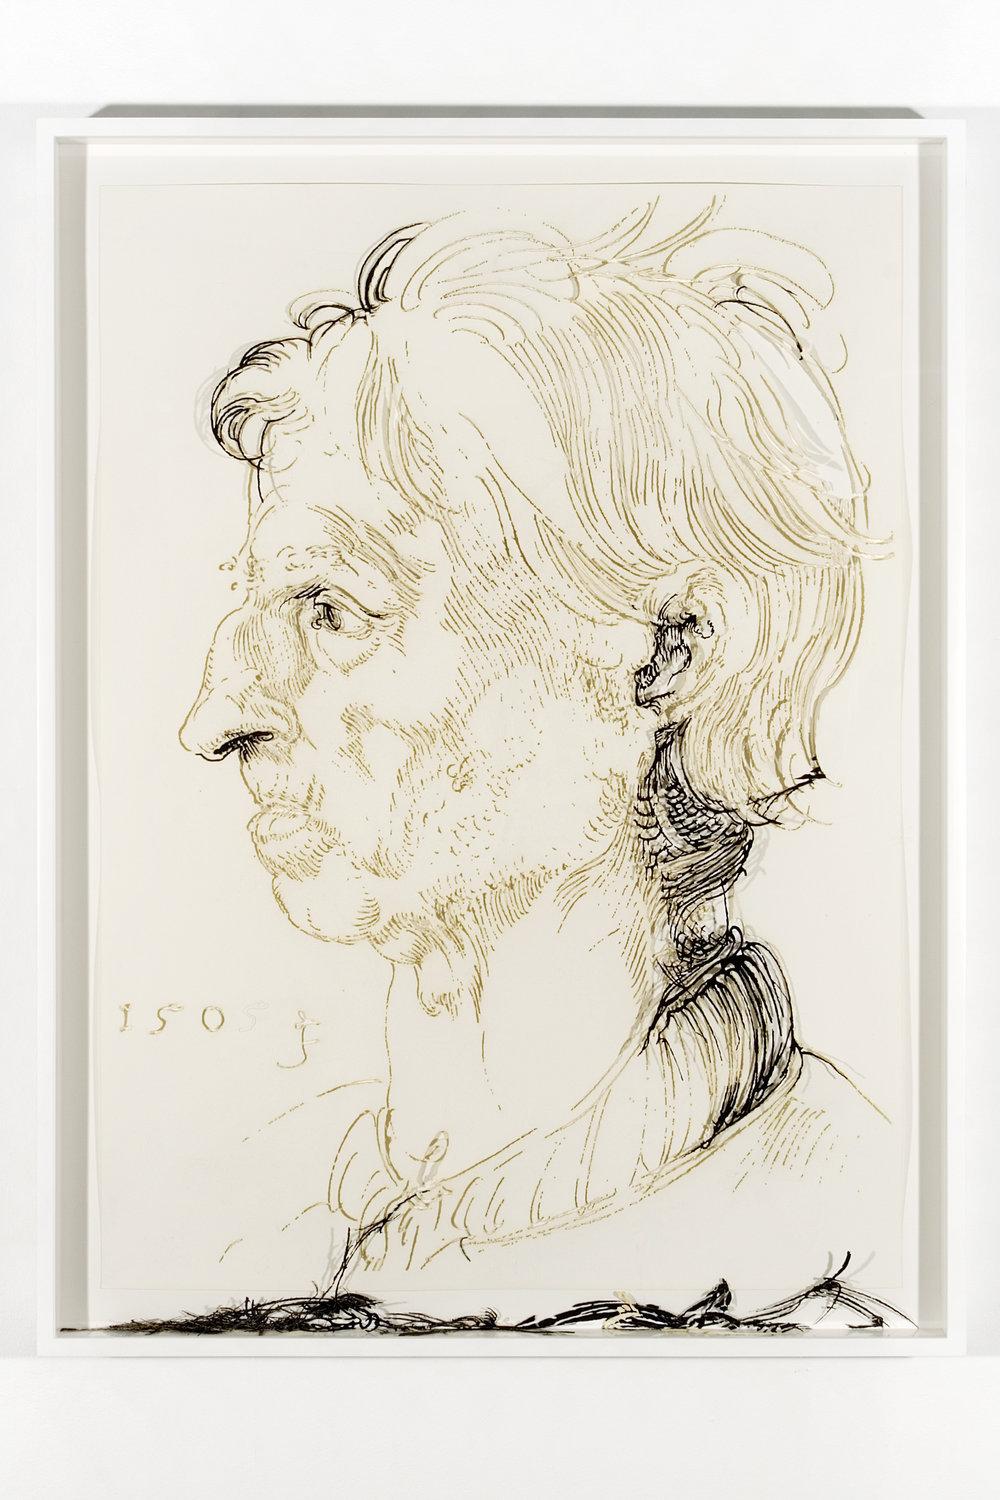 """Collapsed Drawing: """"Head of a Man"""" (Albert Durer), 2007 laser-cut paper and laser-cut archival digital print mounted on museum board 100 x 75 cm - 39 1/4 x 29 1/2 inches (framed)"""